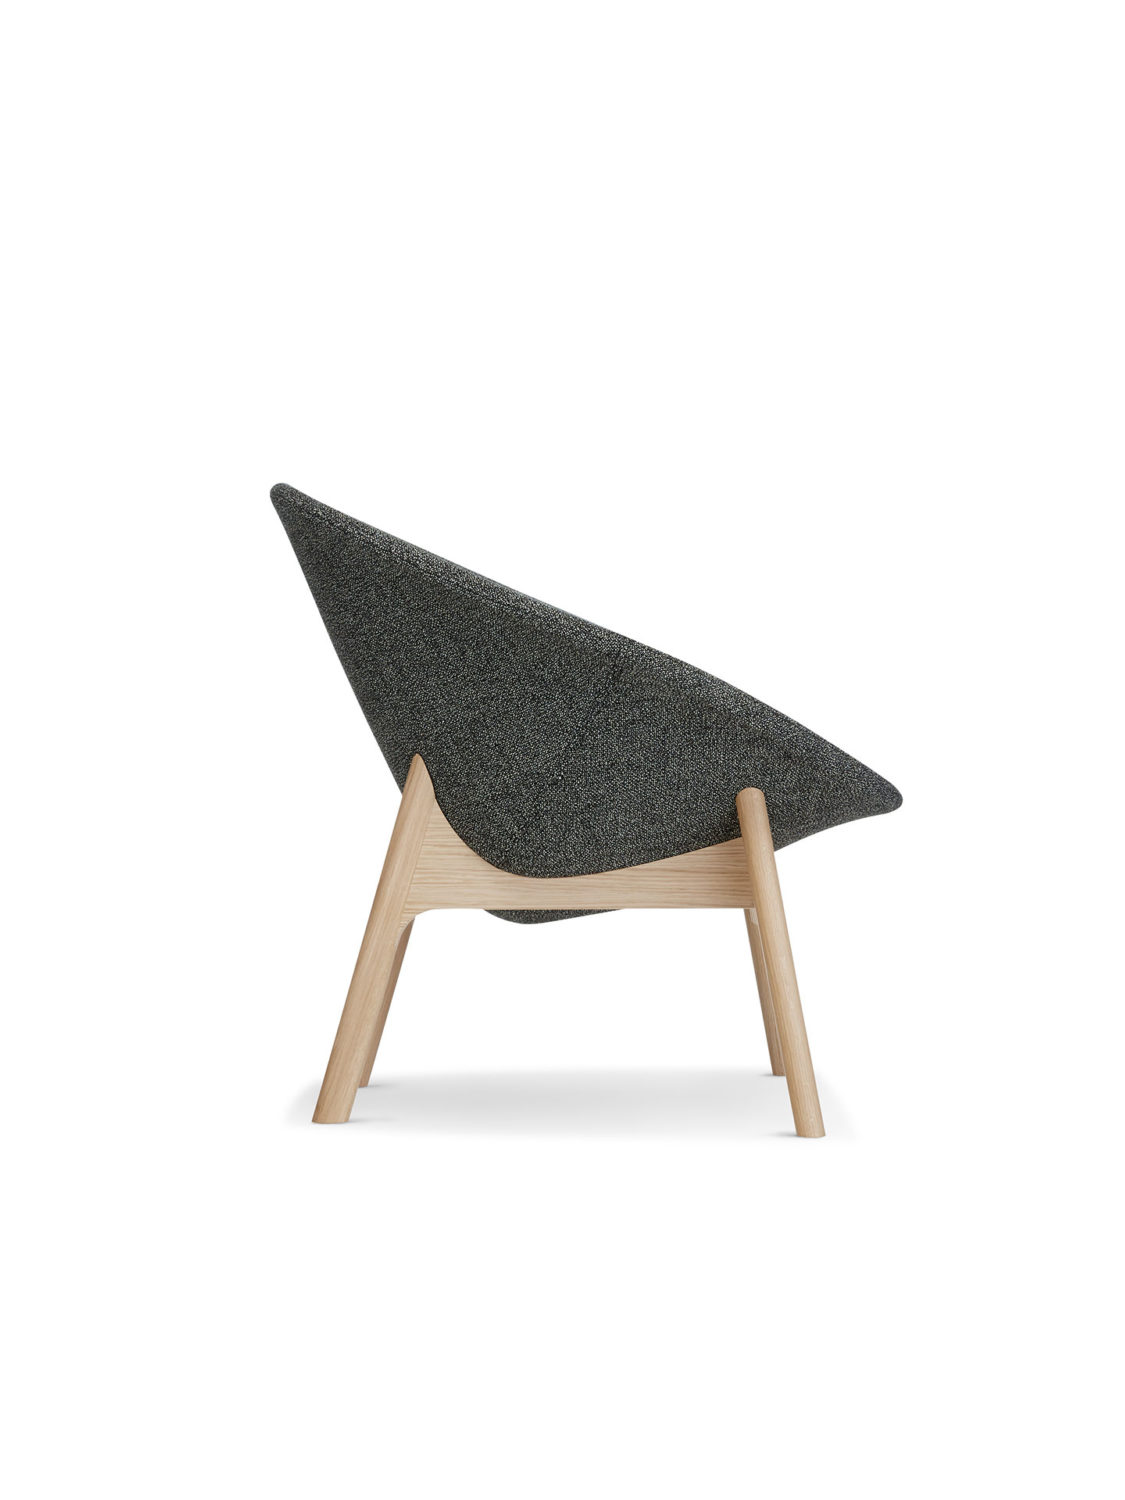 Lily Chair By Michael Sodeau 3